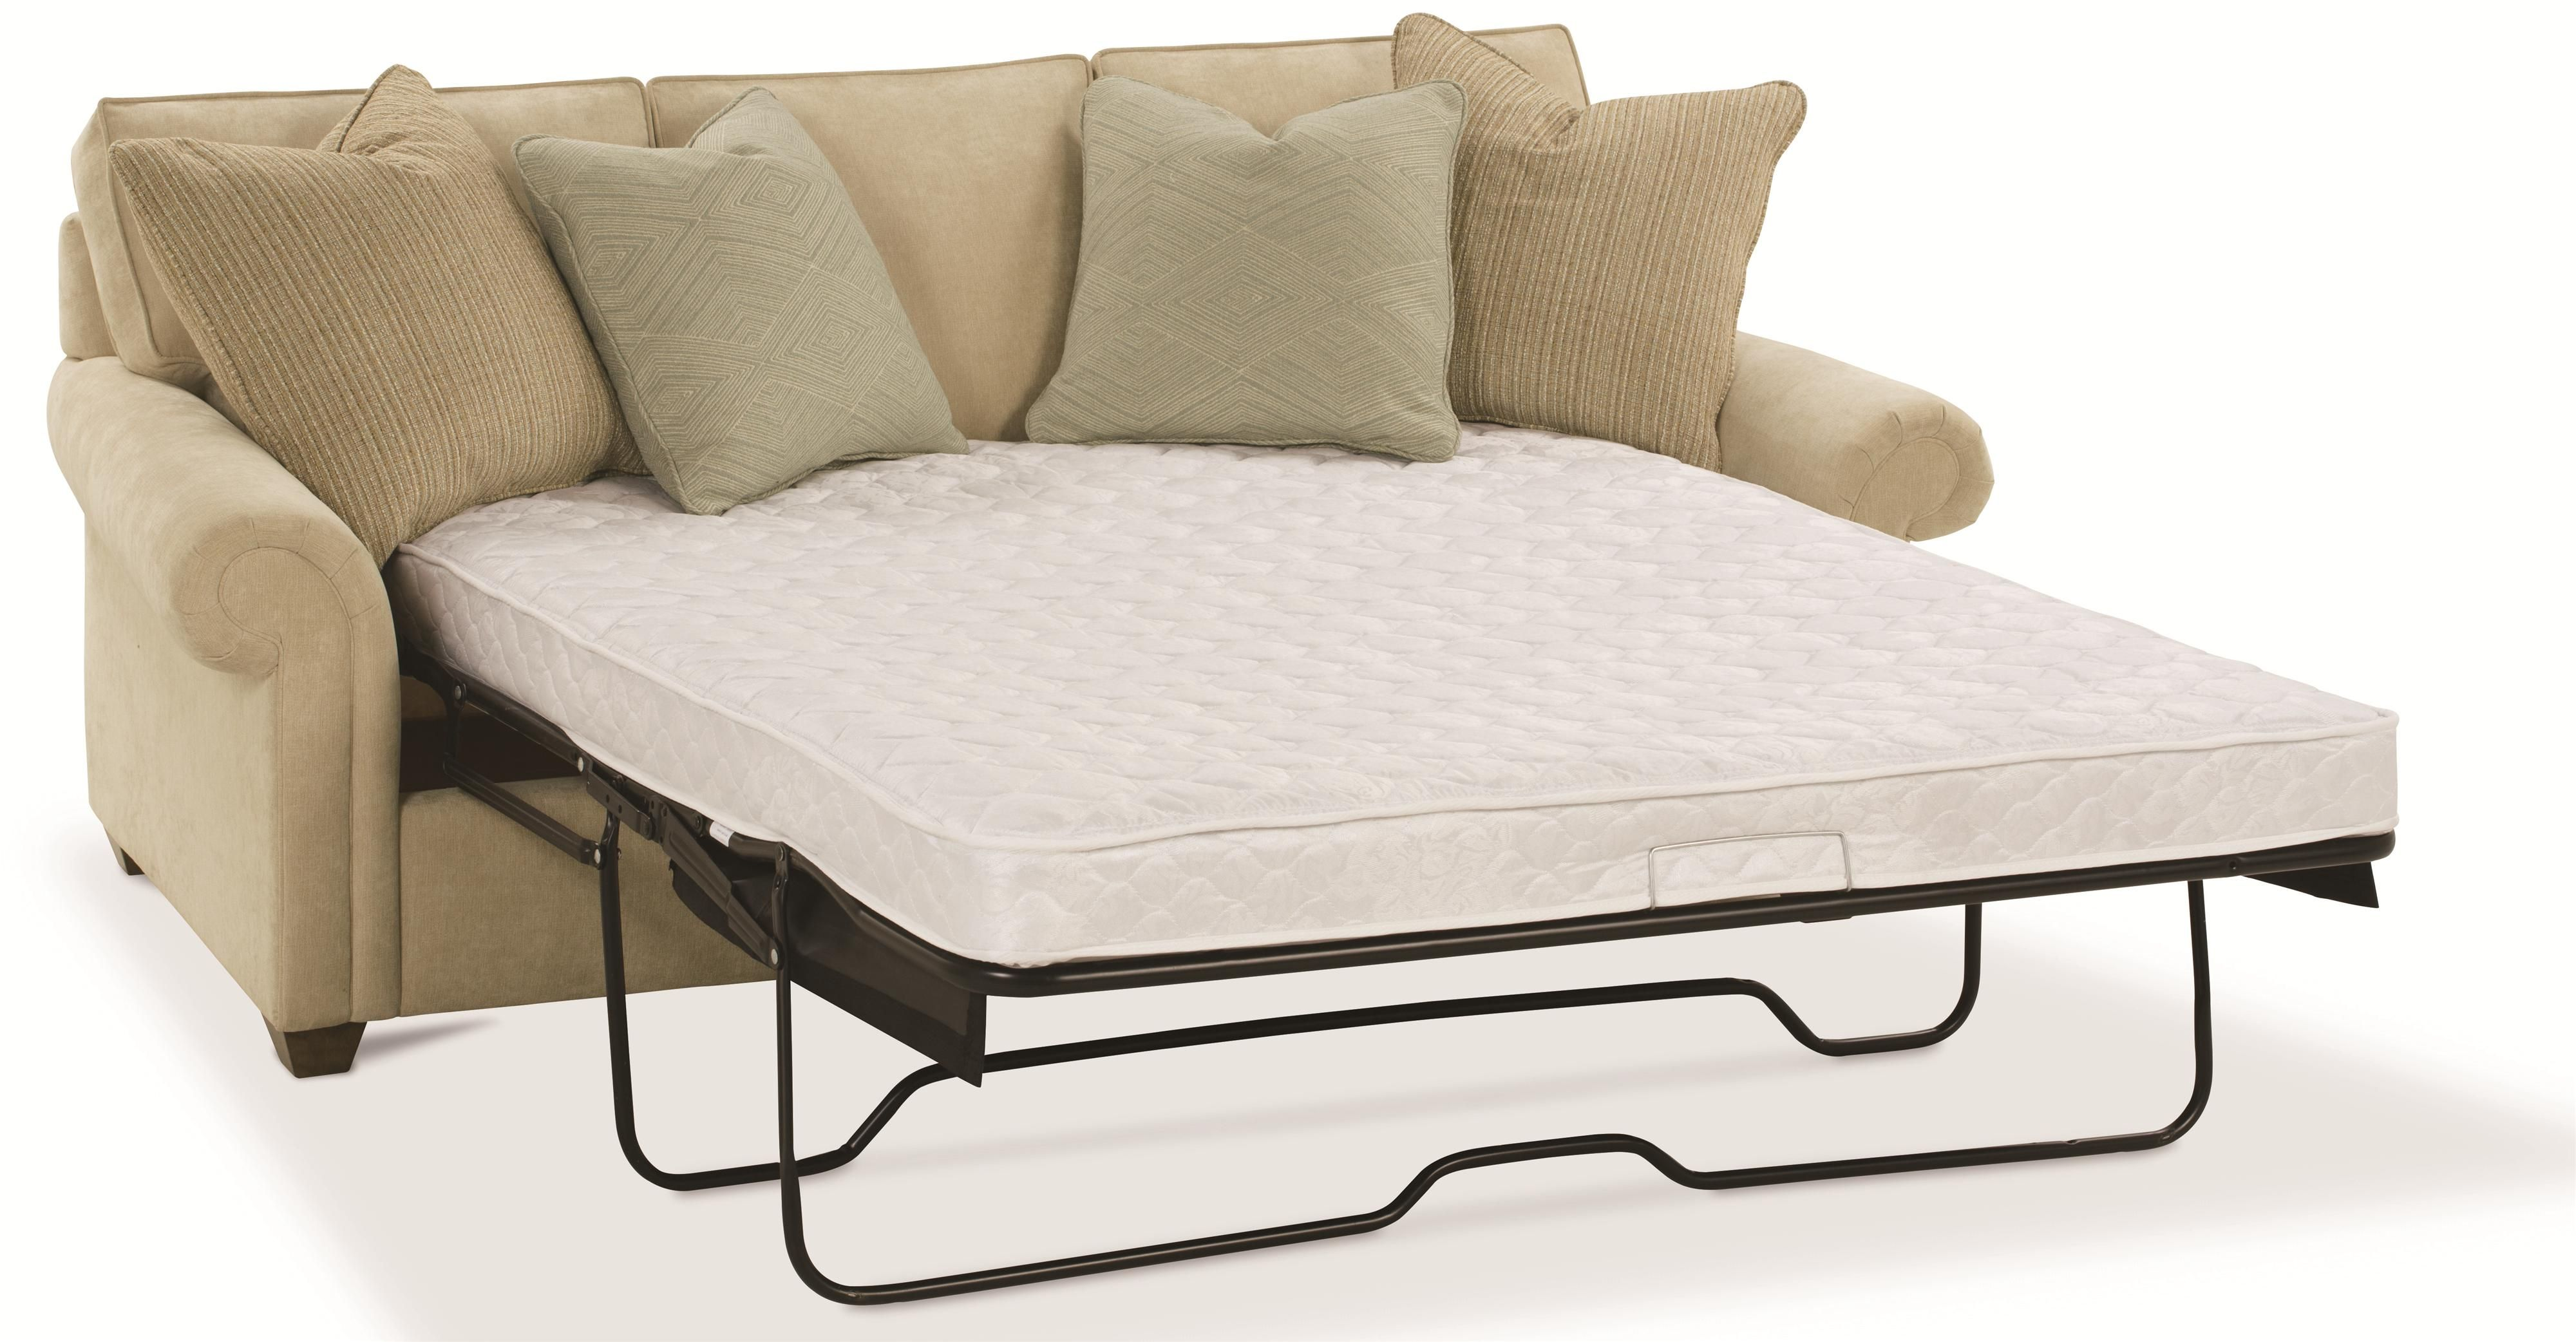 Pin By Sofacouchs On Sleeper Sofa Comfy Sofa Pull Out Sofa Bed Sectional Sleeper Sofa